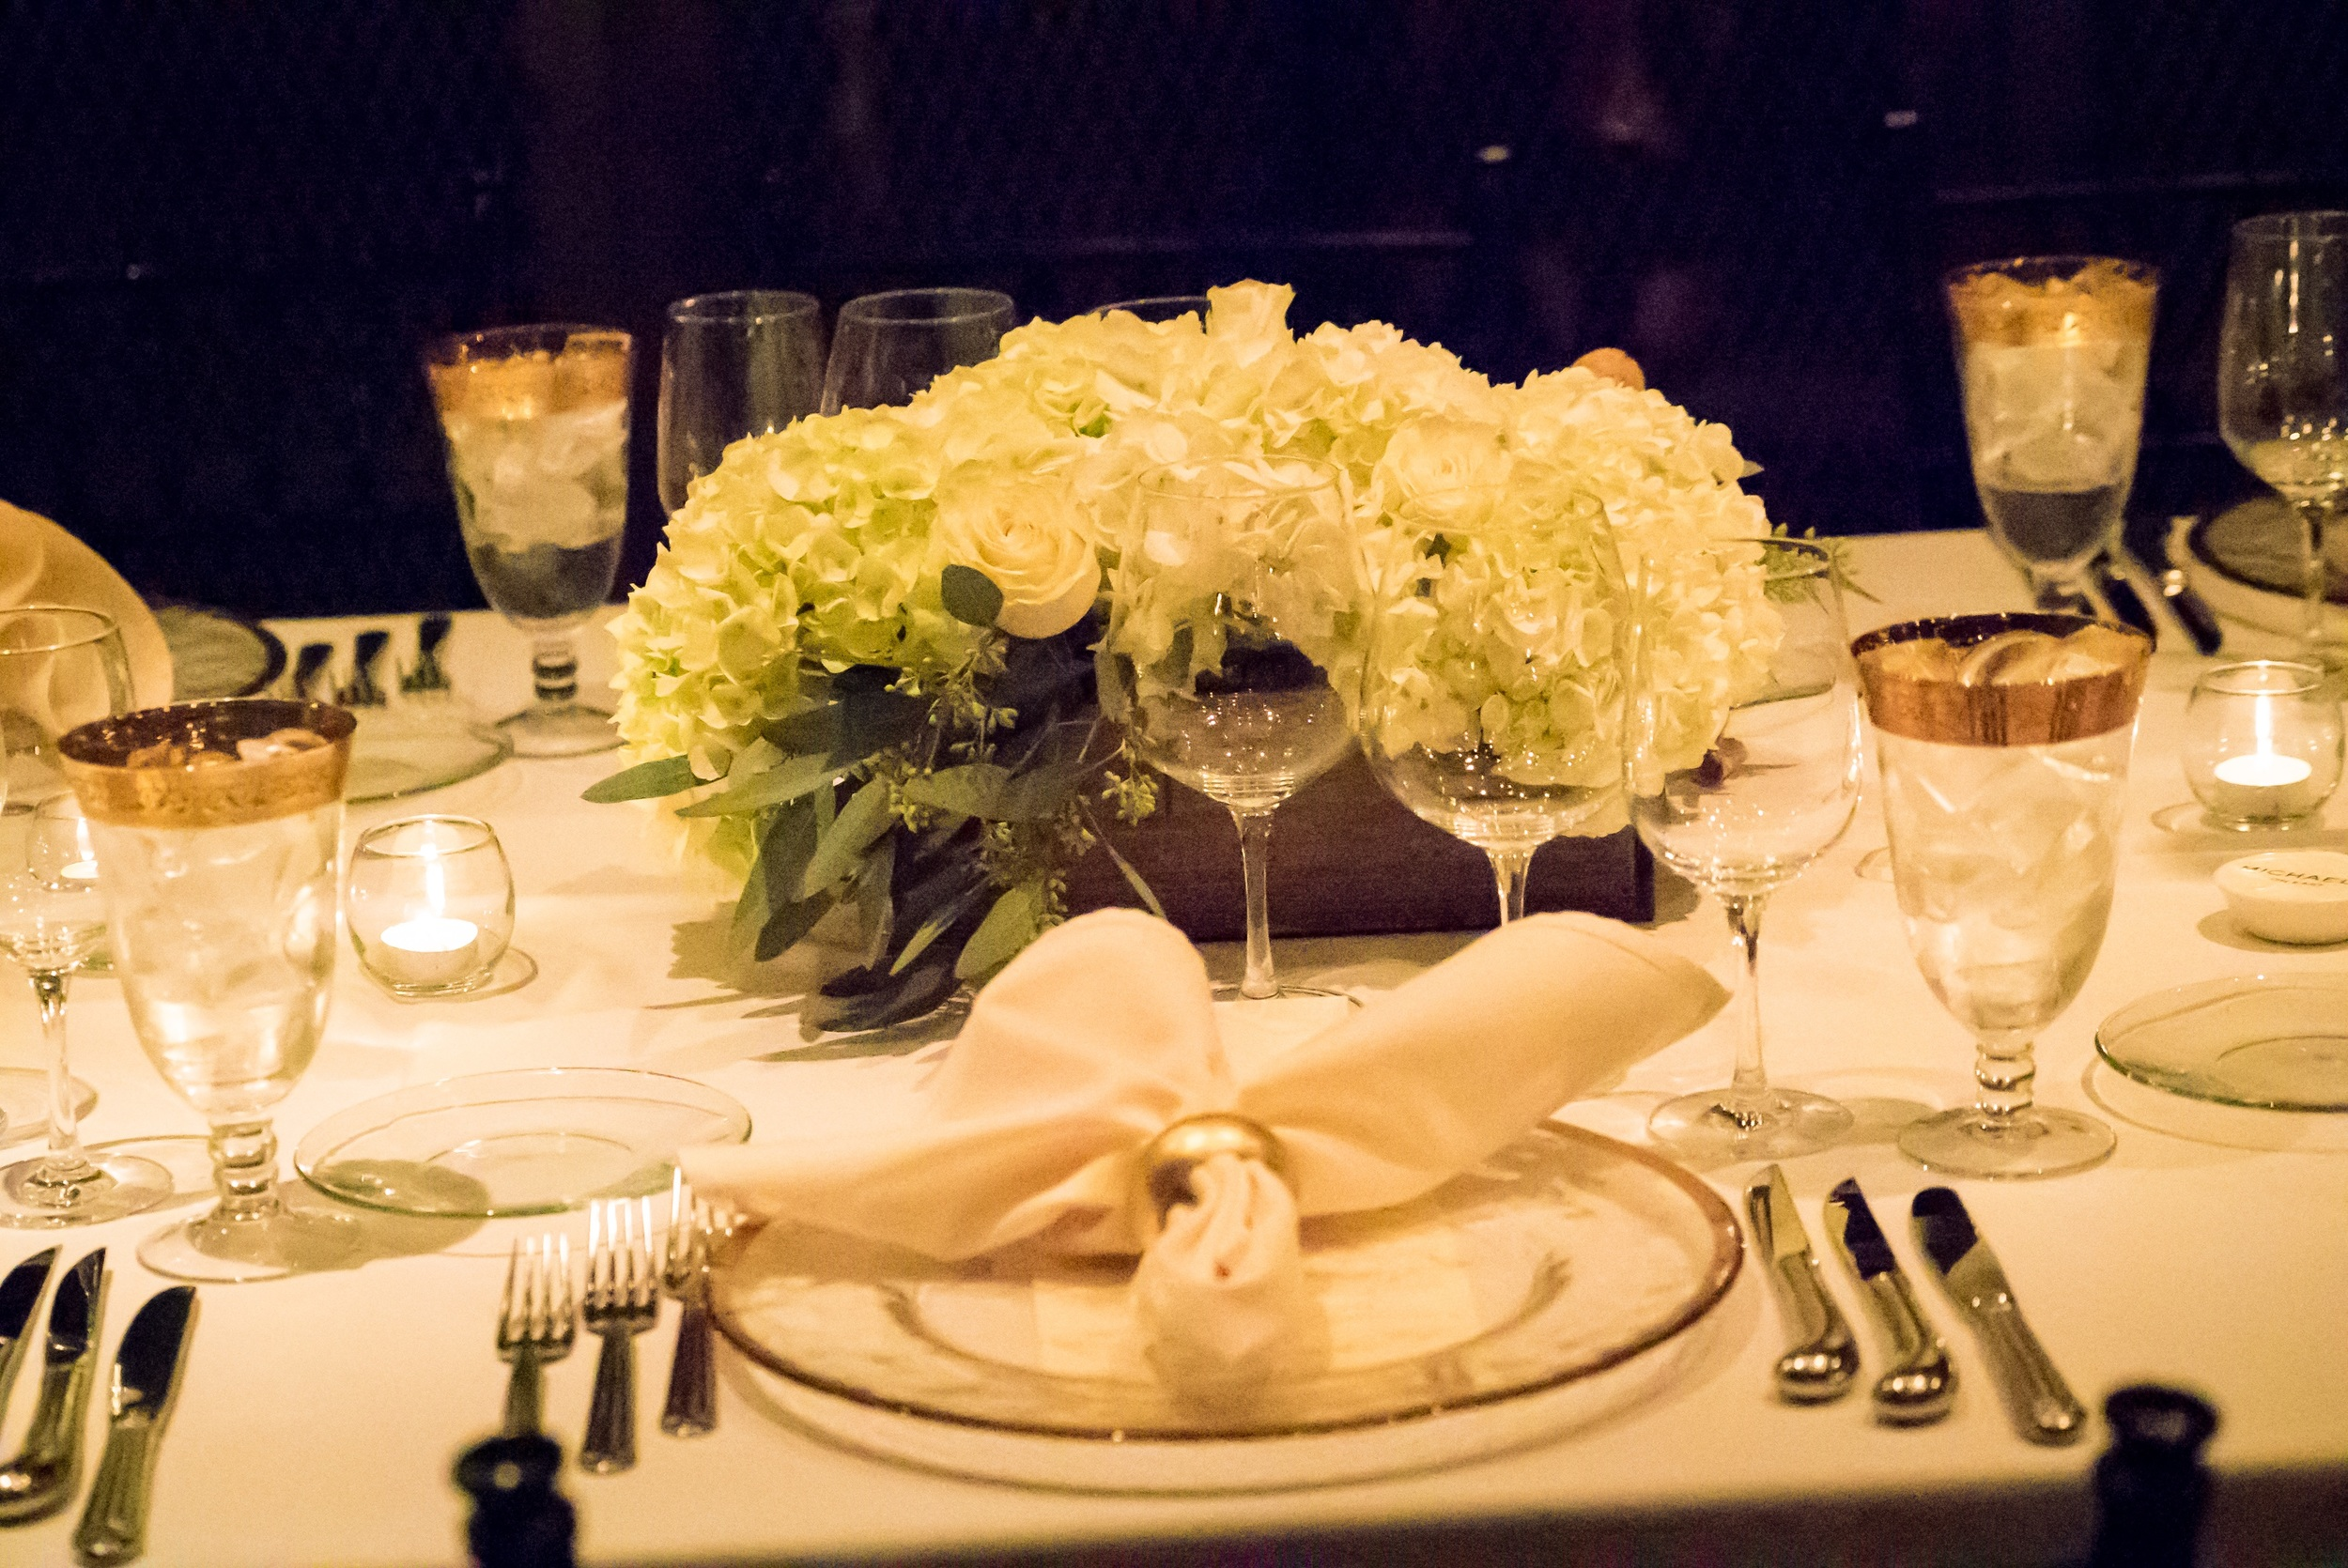 Place settings features gold-rimmed chargers and goblets, with hedge box centerpieces filled with natural flora